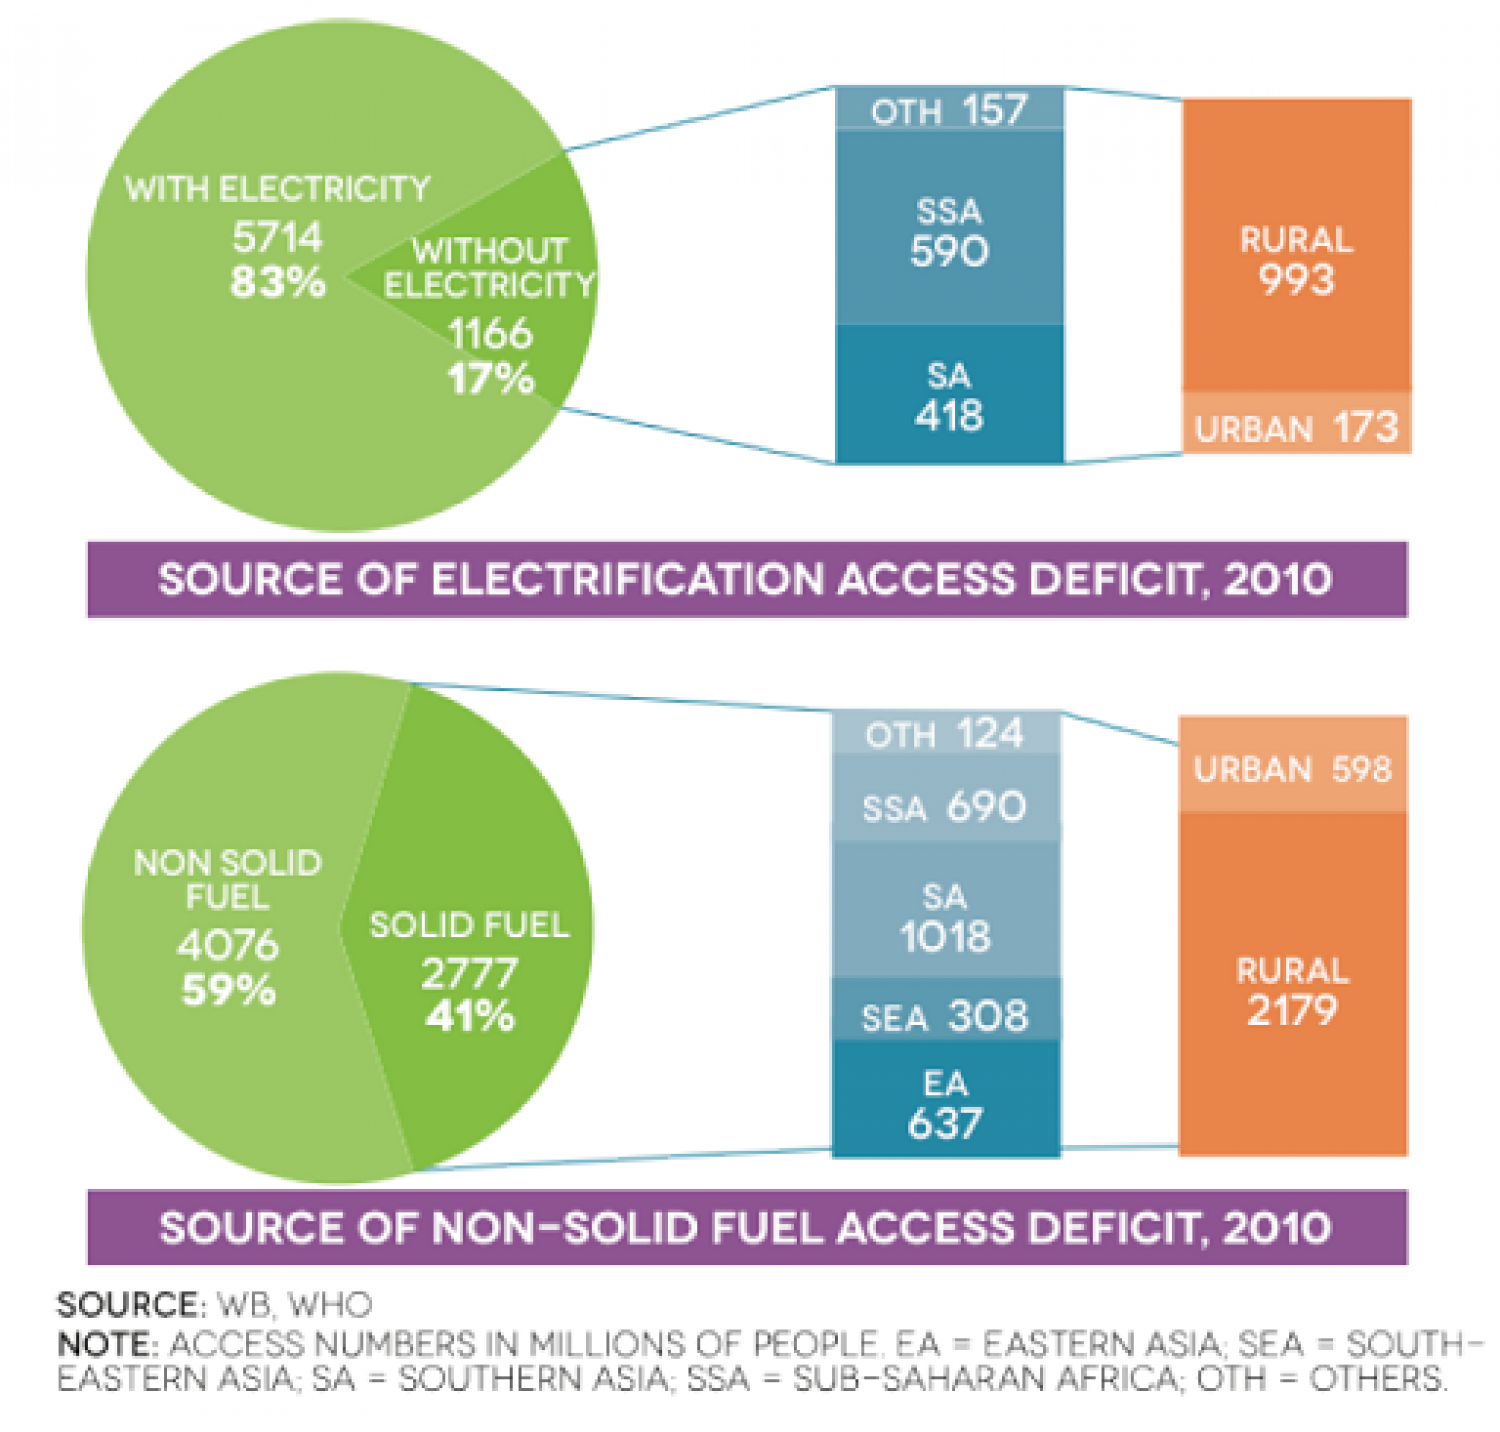 Source of electrification access deficit, Source of non-solid fuel access deficit  Infographic